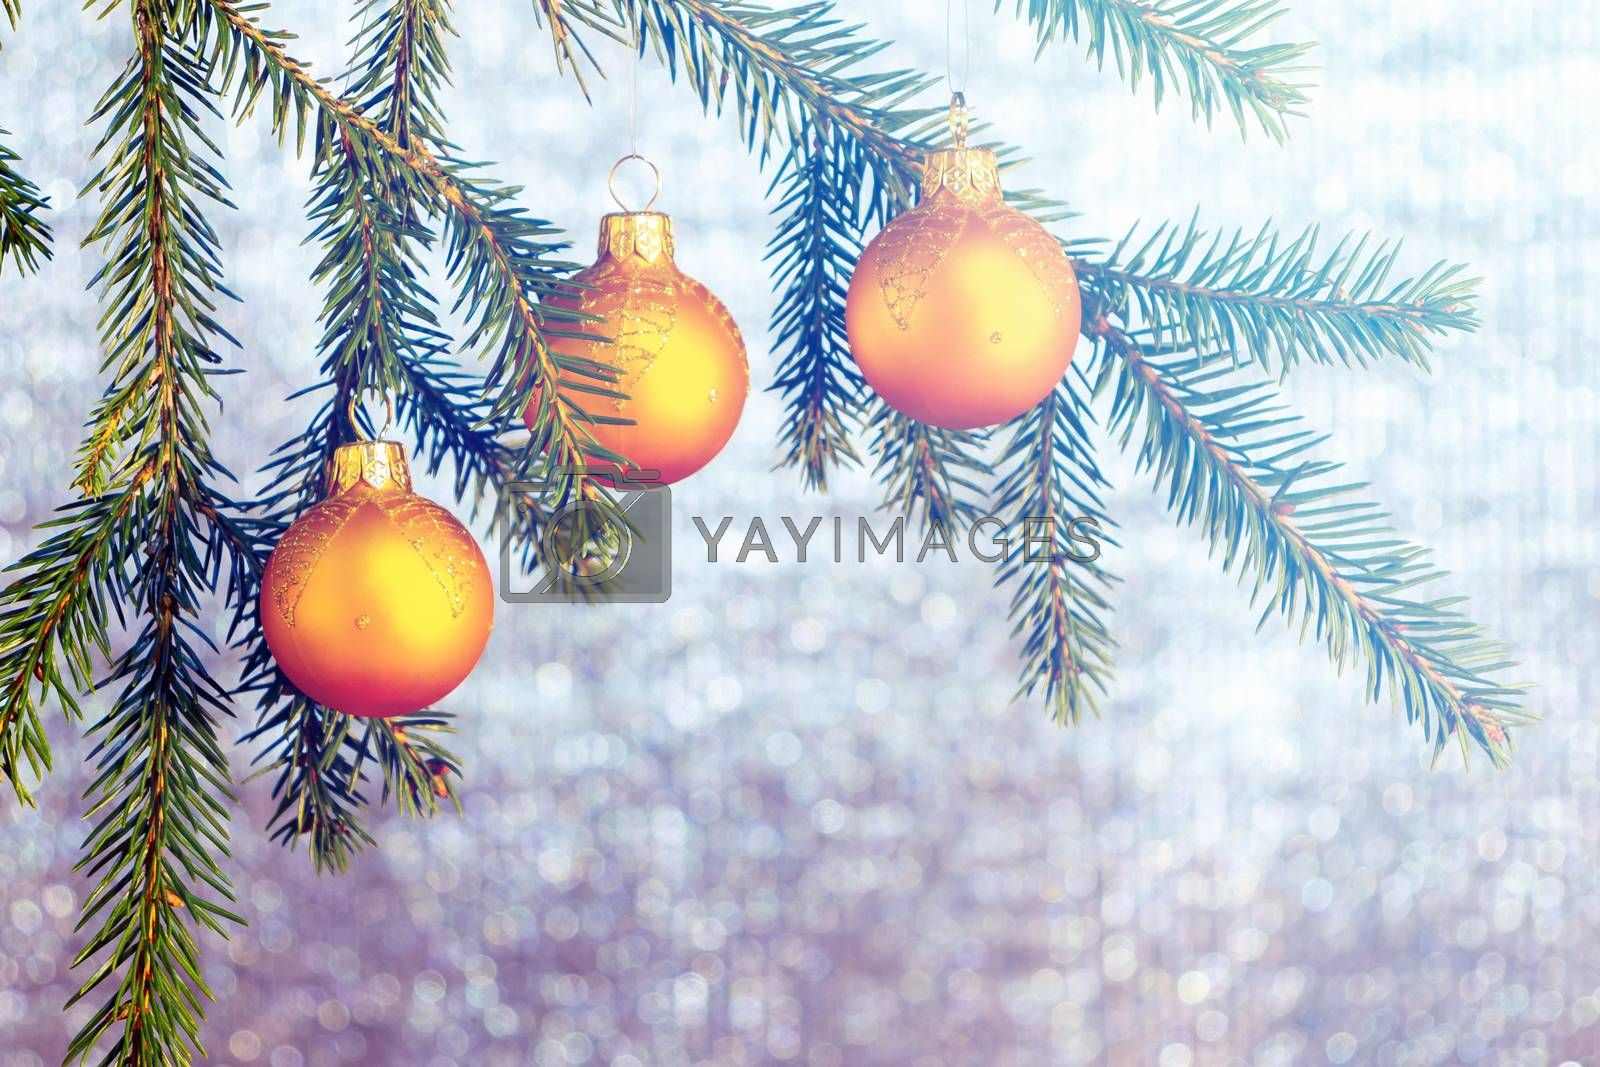 Orange Christmas ornaments on spruce branches on a shiny silver background. New Year's or Christmas background by galsand